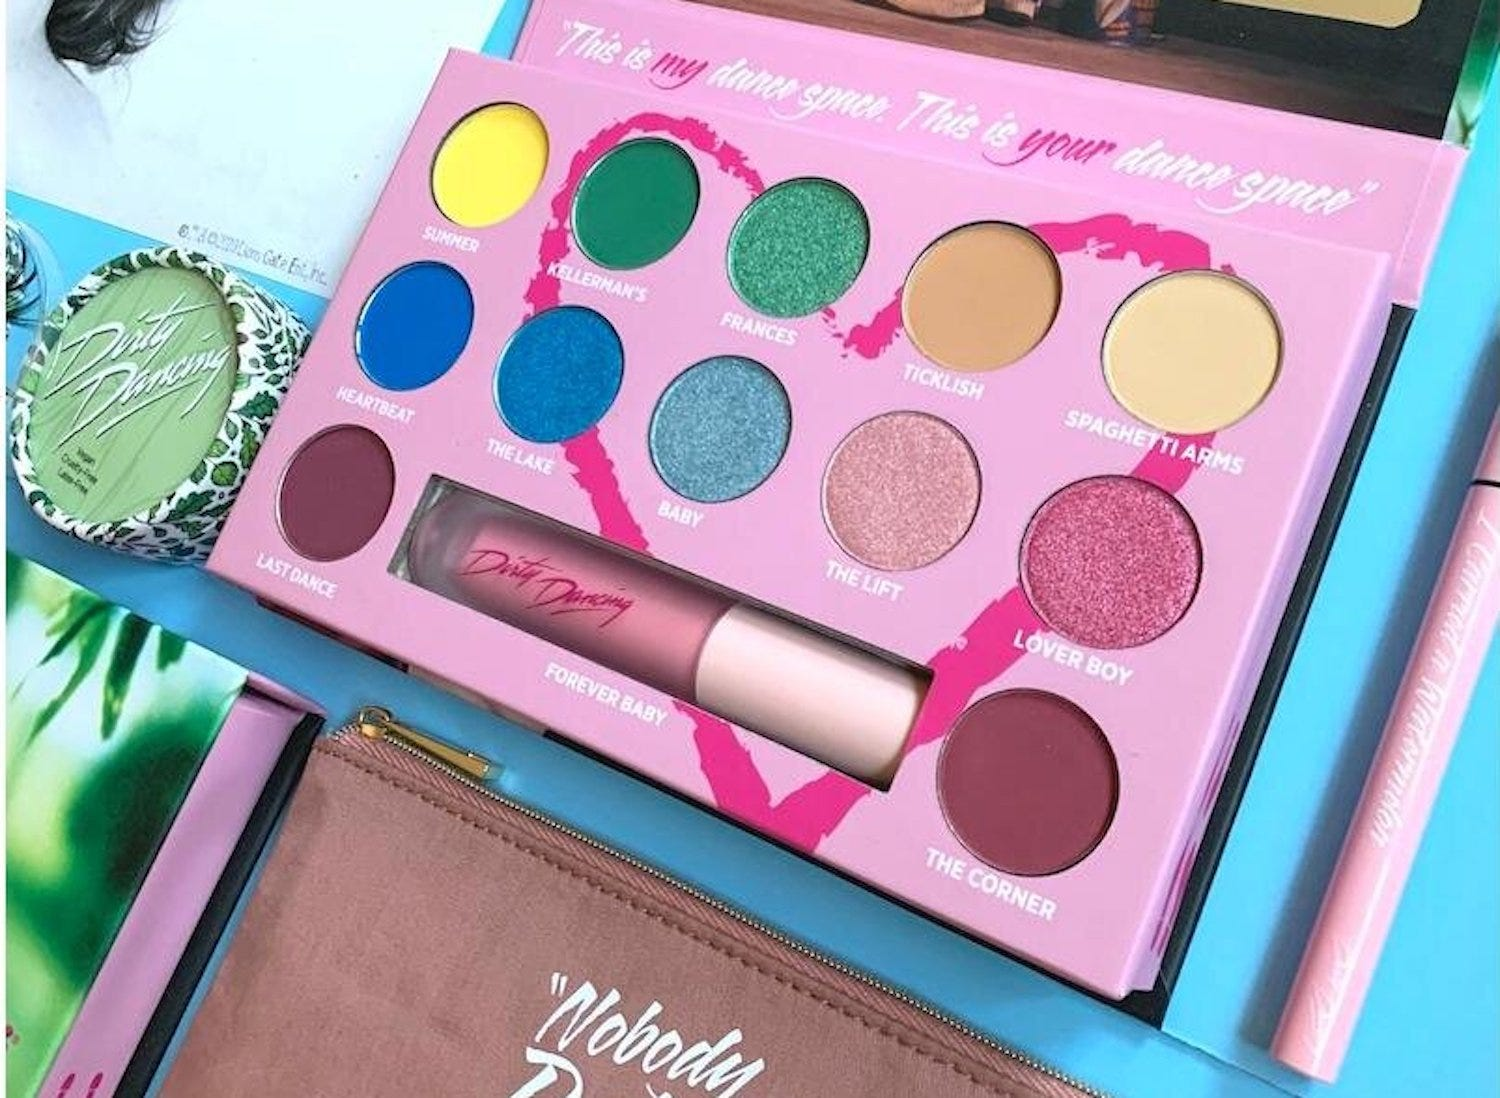 A pink eyeshadow palette with a rainbow of round eyeshadow pots and a pink lip gloss tube